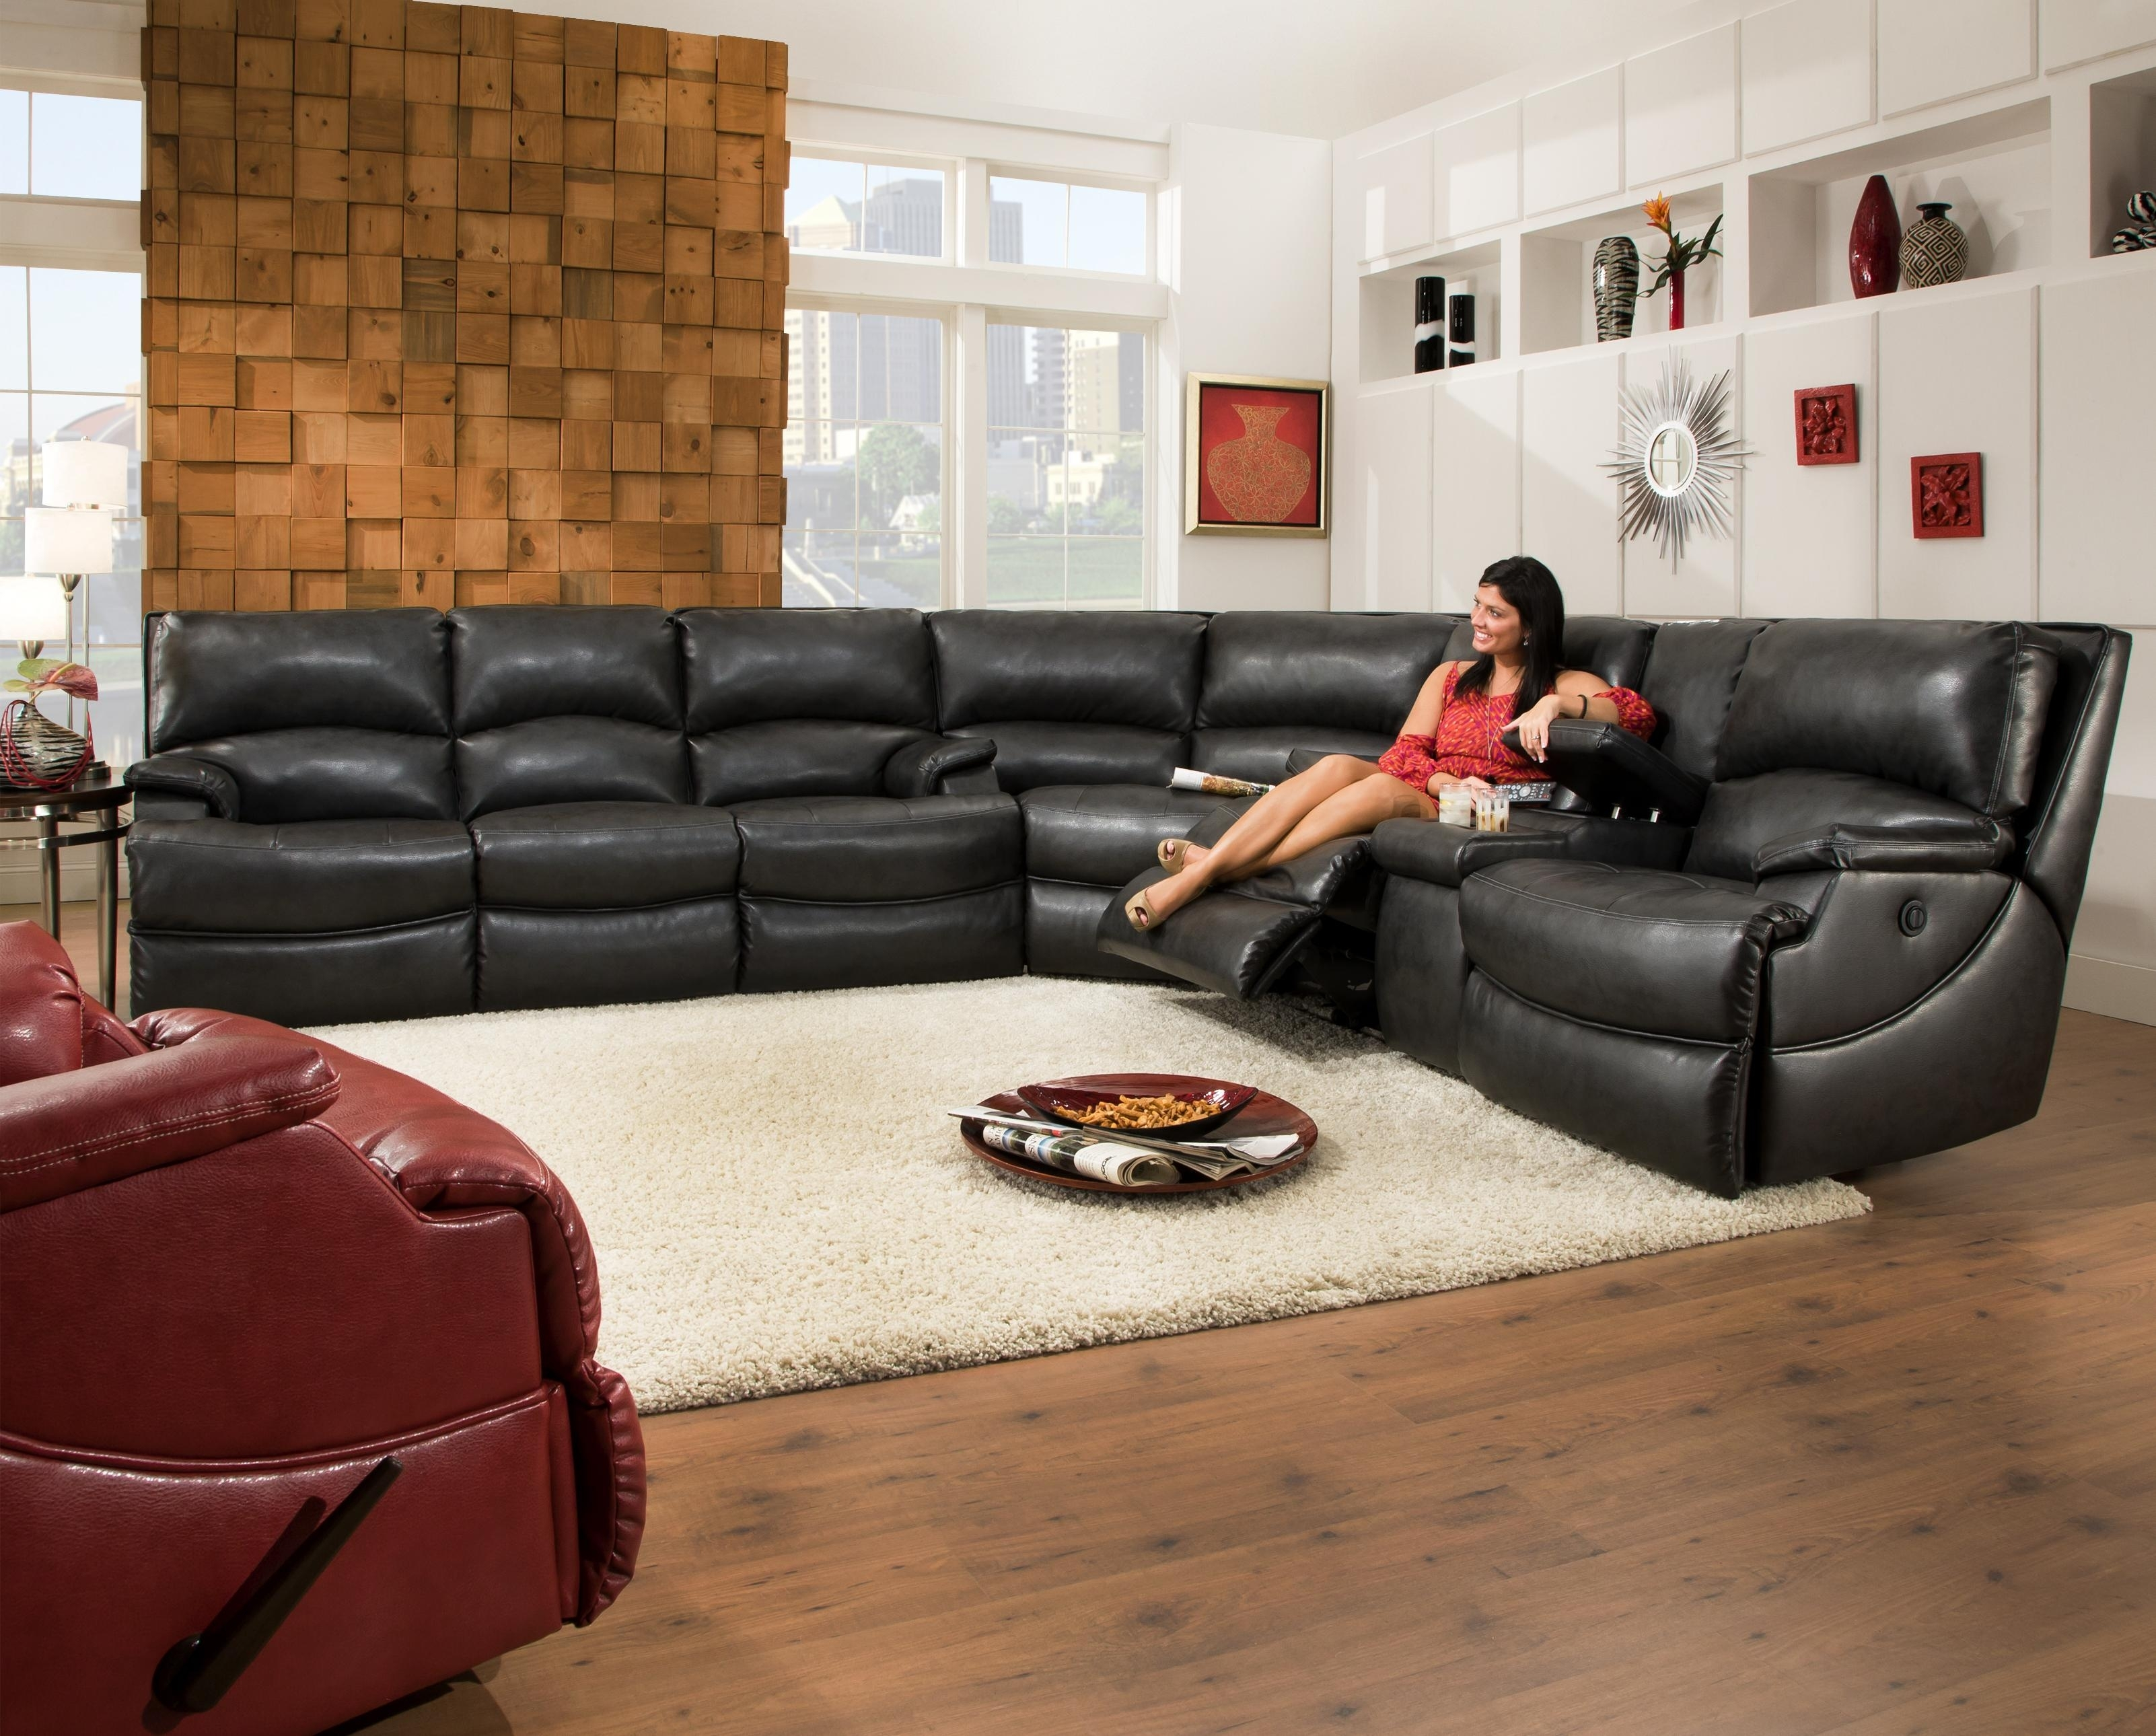 Cheap Sectional Sofas Charlotte Nc | Functionalities for Sectional Sofas At Charlotte Nc (Image 3 of 15)